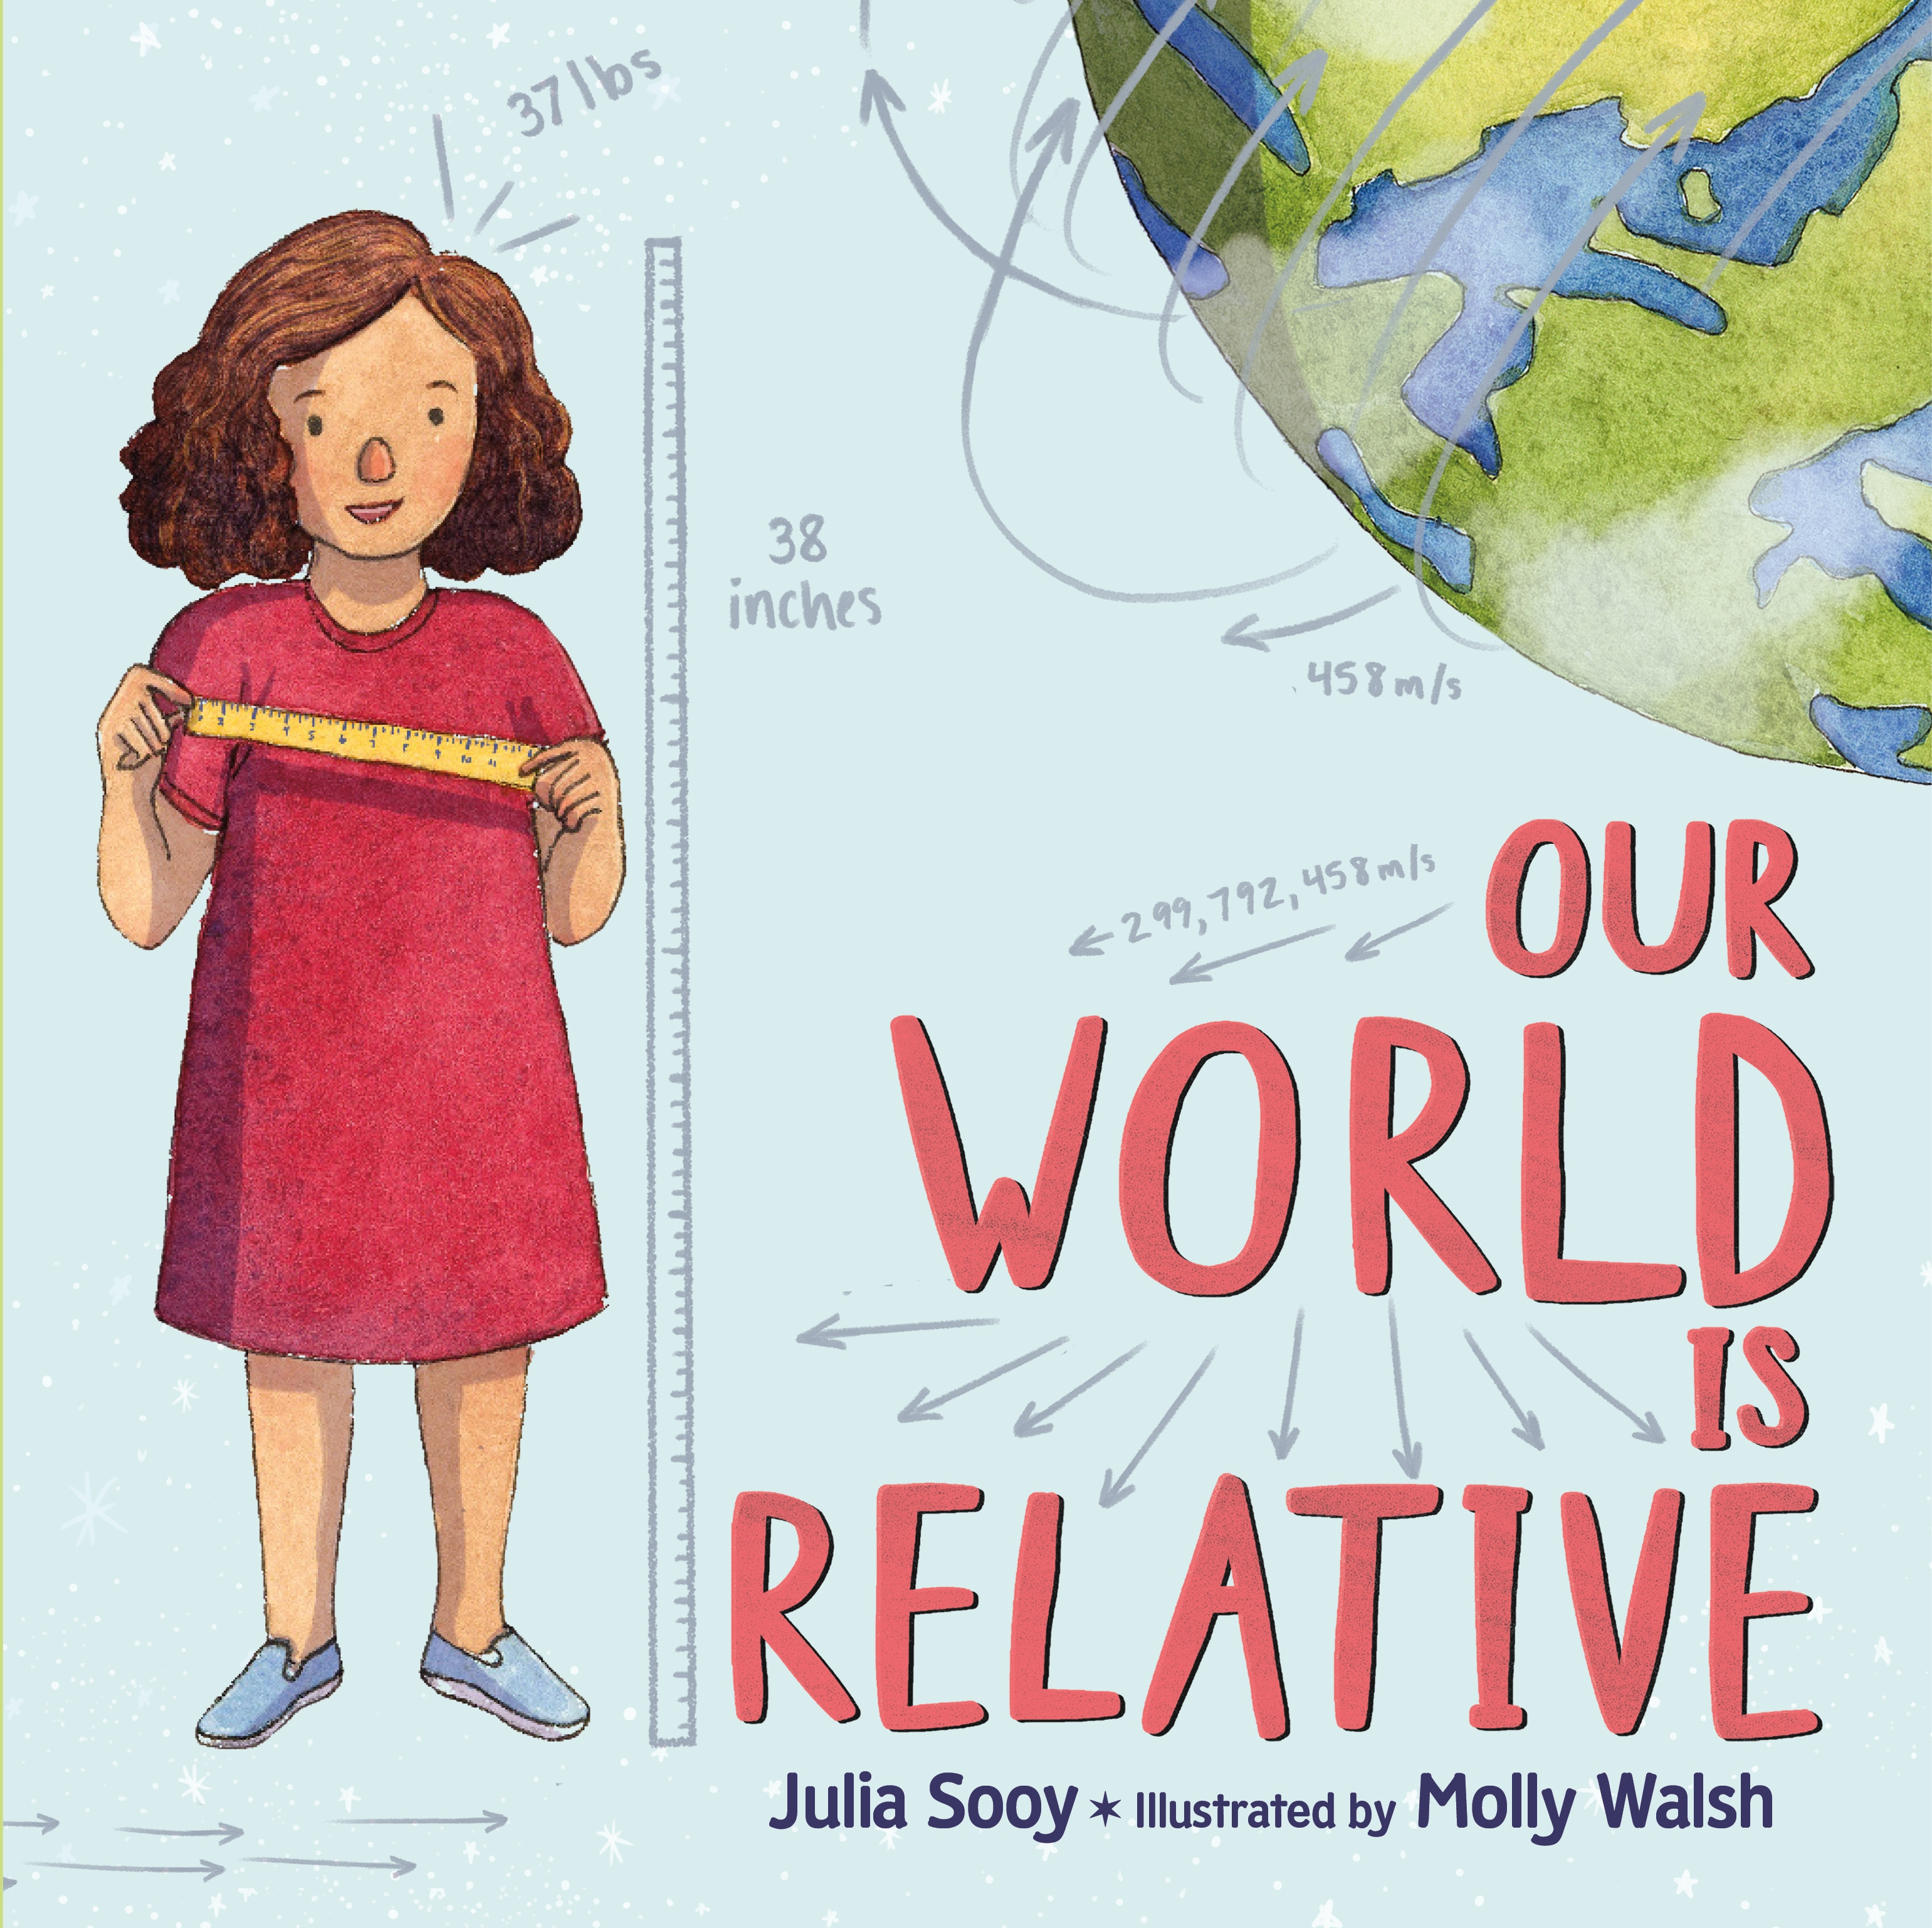 Sunday Story Time: Our World Is Relative by Julia Sooy